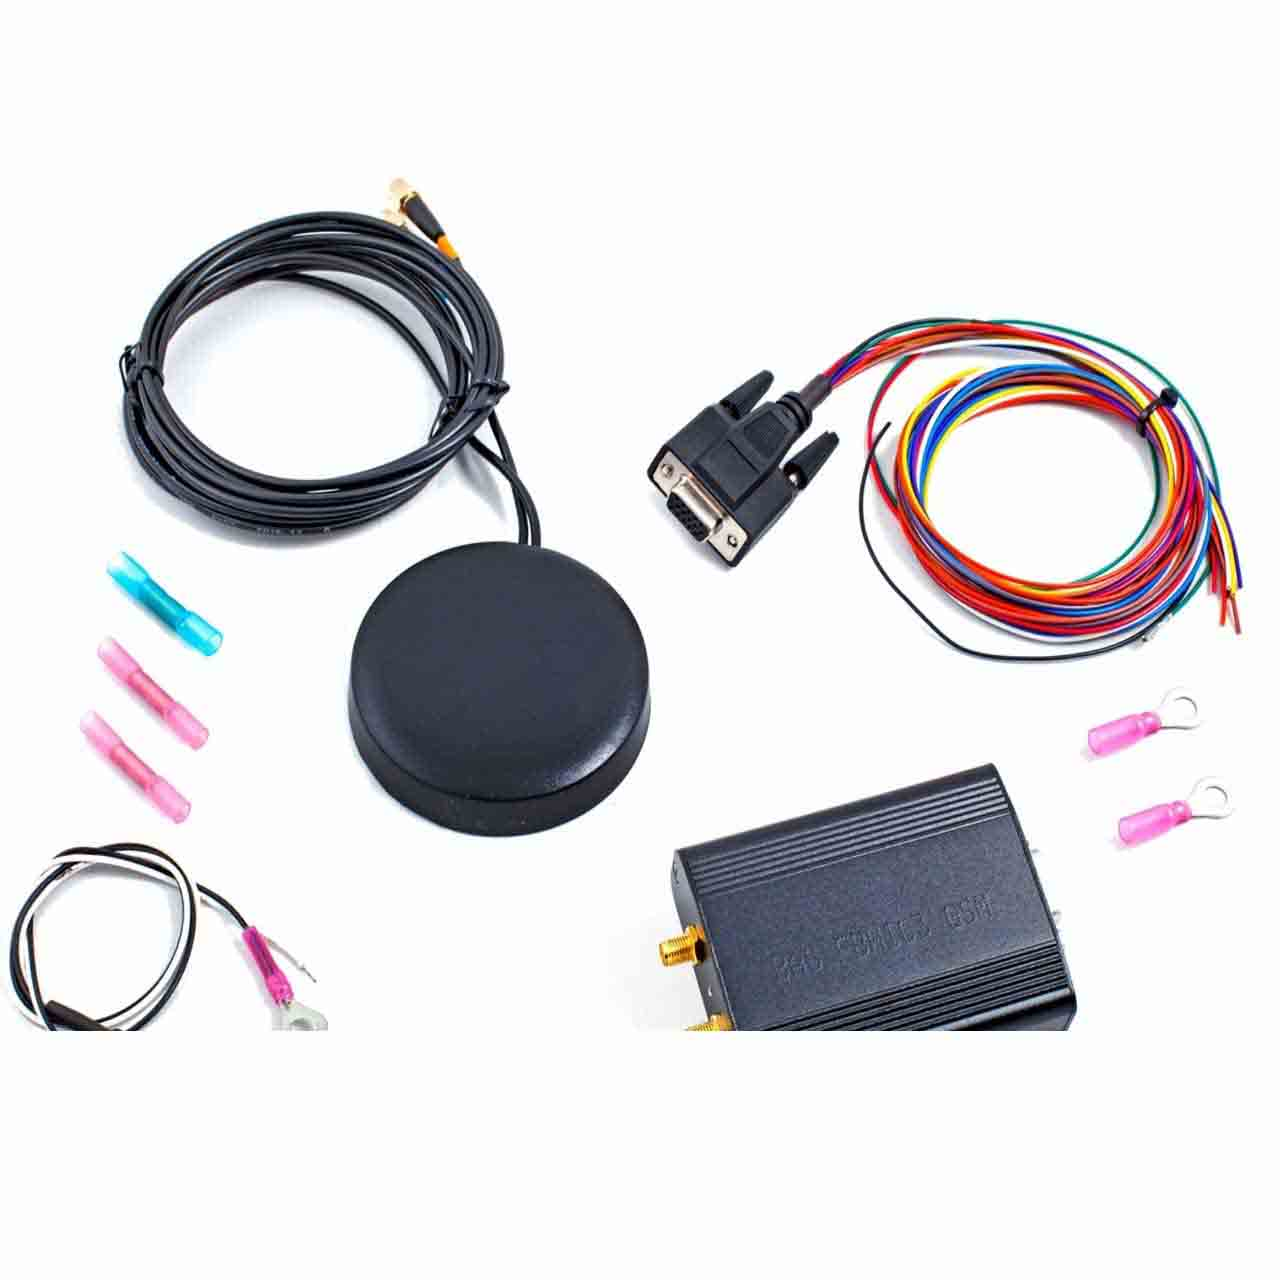 Discovery 3 Fuel Burning Heater Fbh Gsm Telecomando Gps Tracker GR2-04843